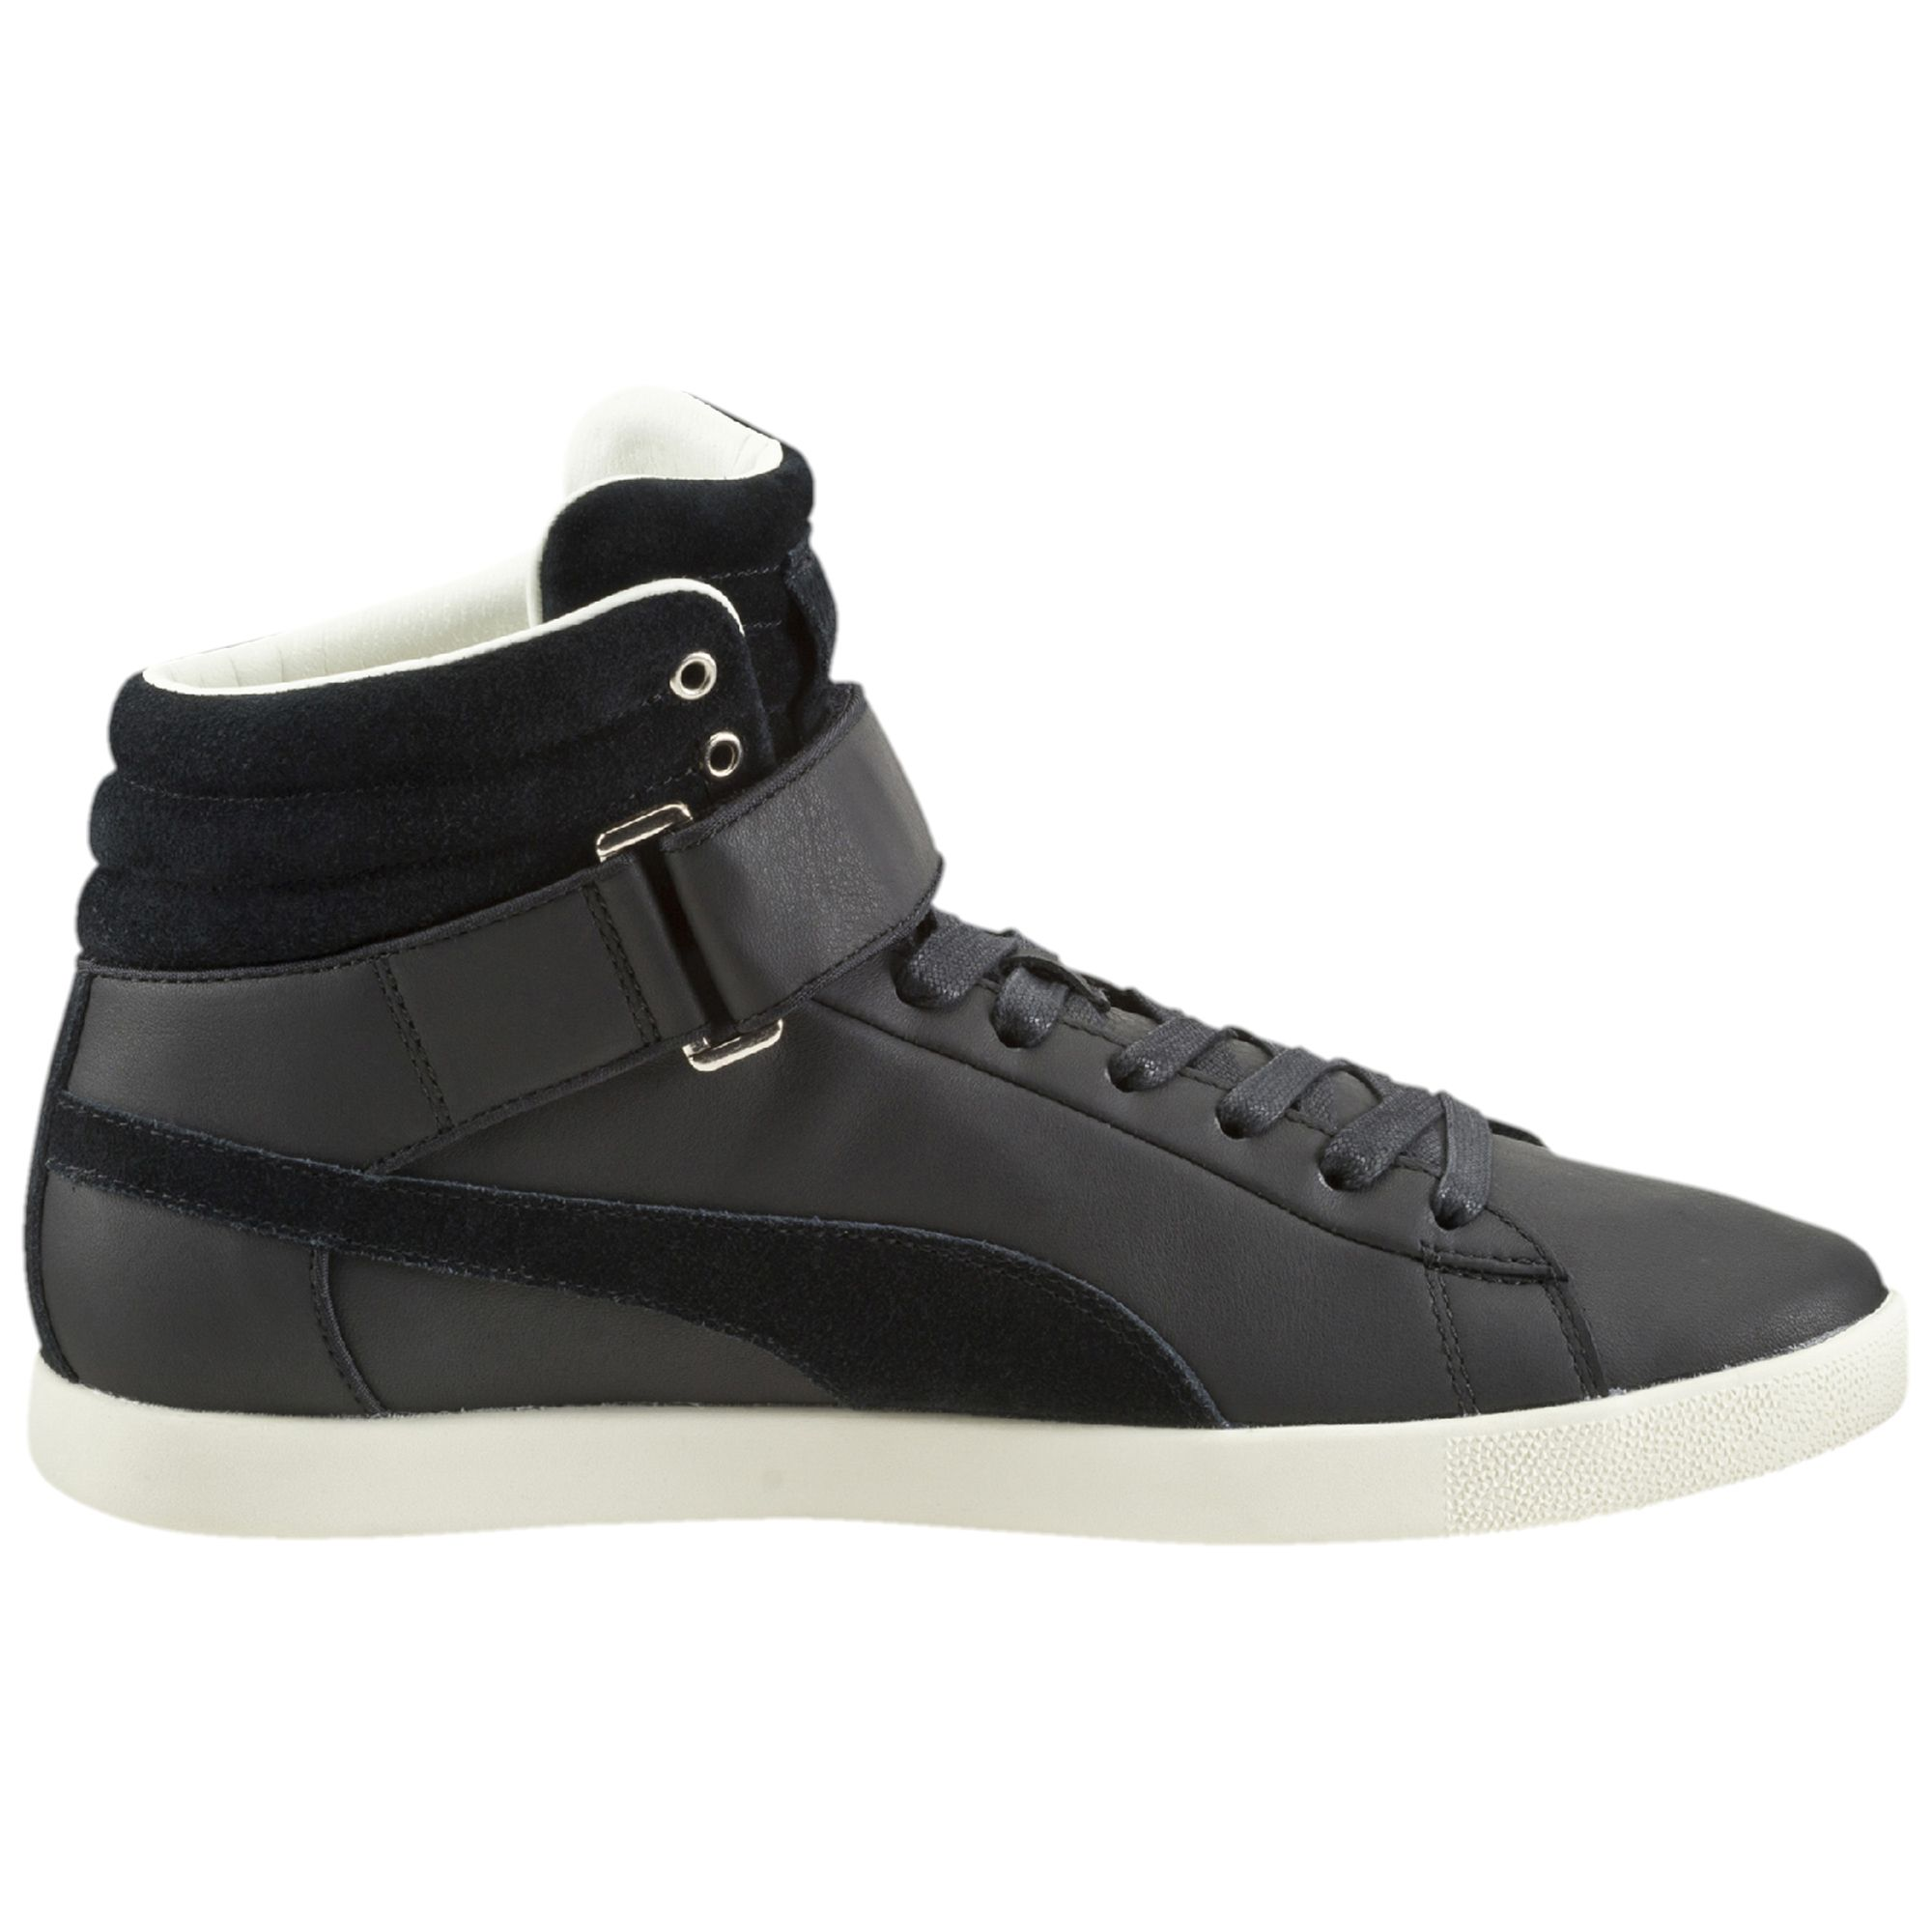 puma modern court high tops schuhe basketball herren ebay. Black Bedroom Furniture Sets. Home Design Ideas